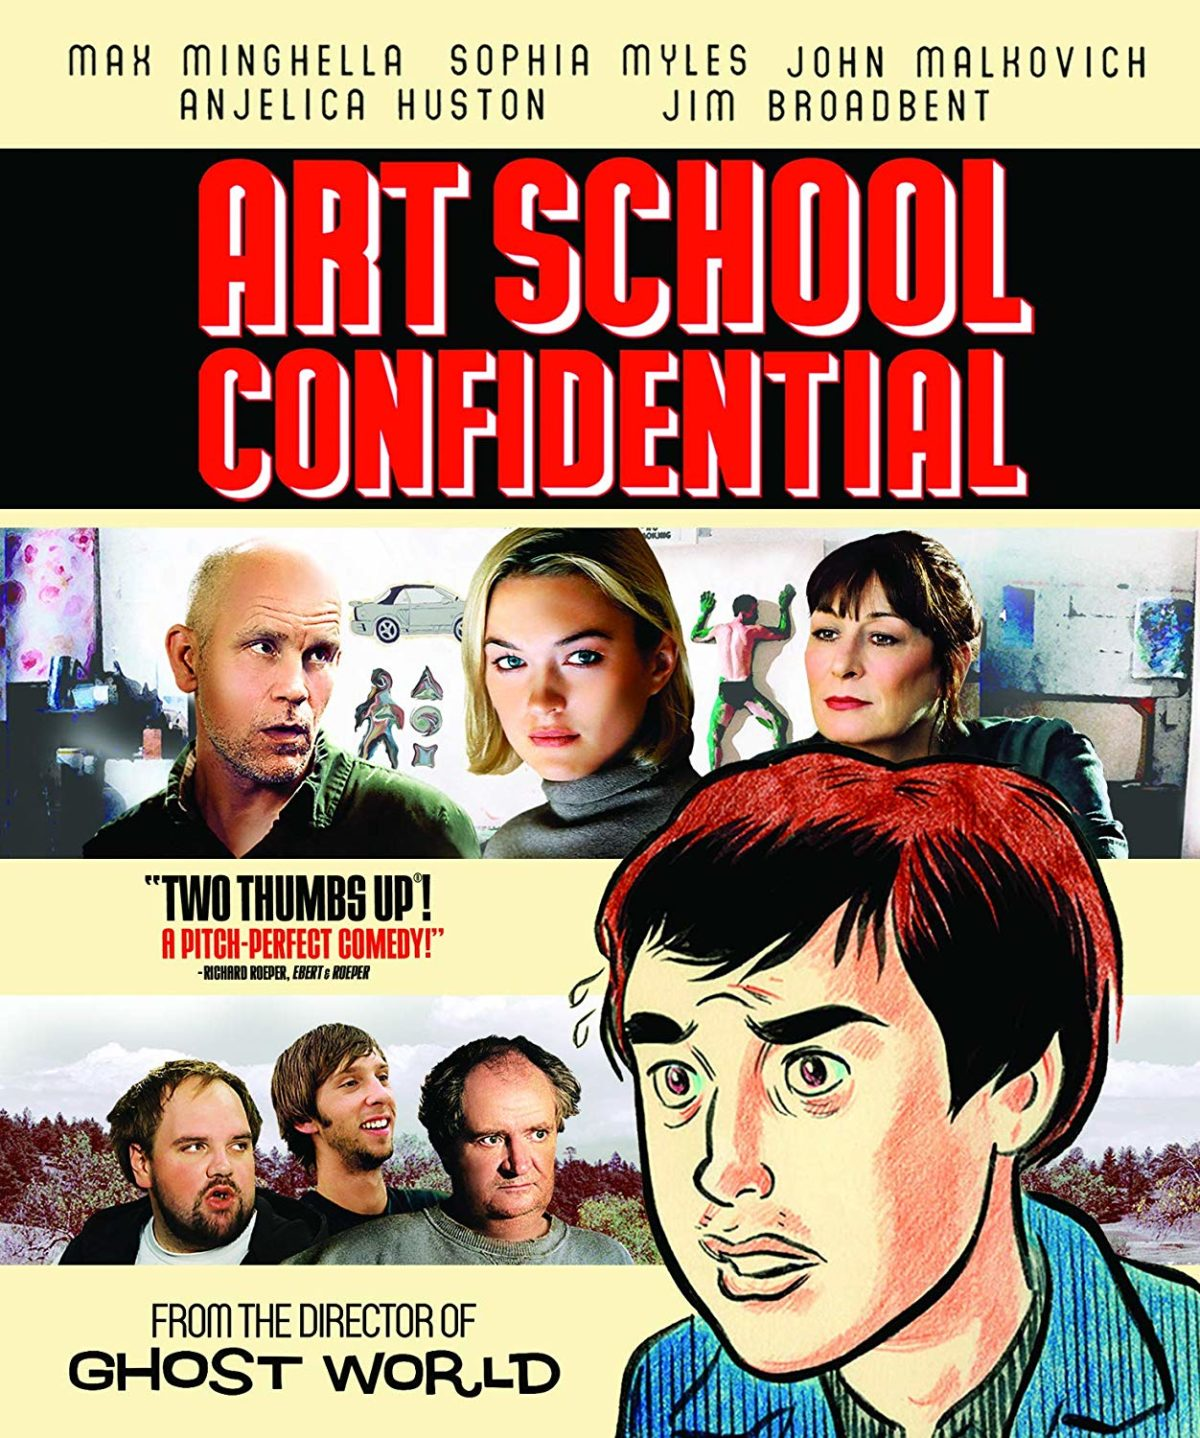 Mike's Picks: 'Art School Confidential' and 'Invasion of the Body Snatchers'